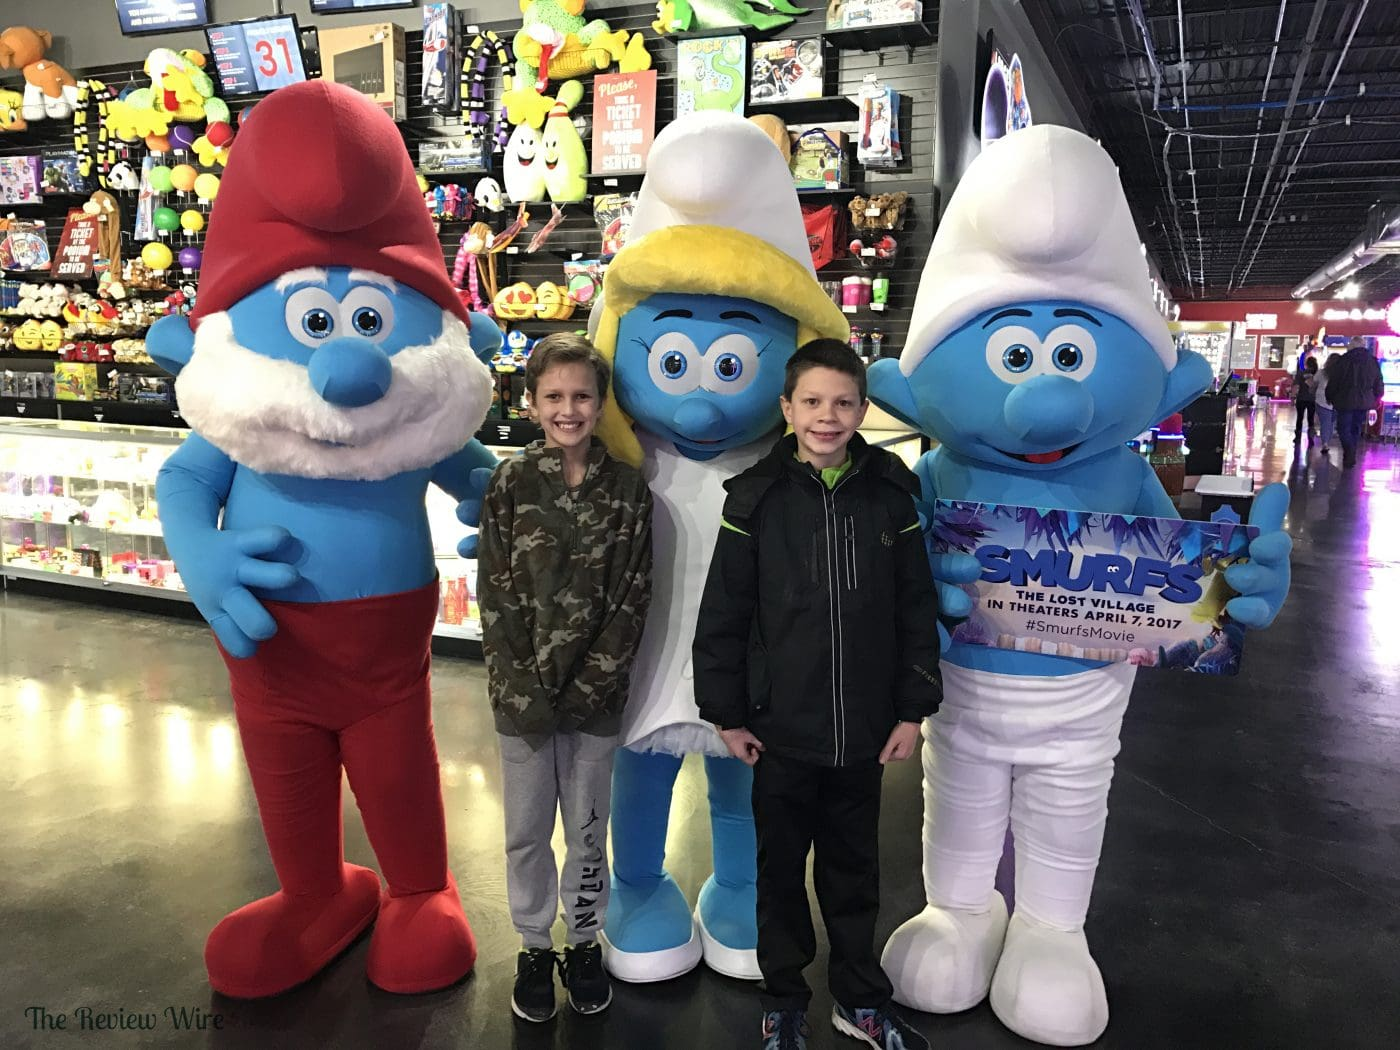 SMURFS Meet and Greet